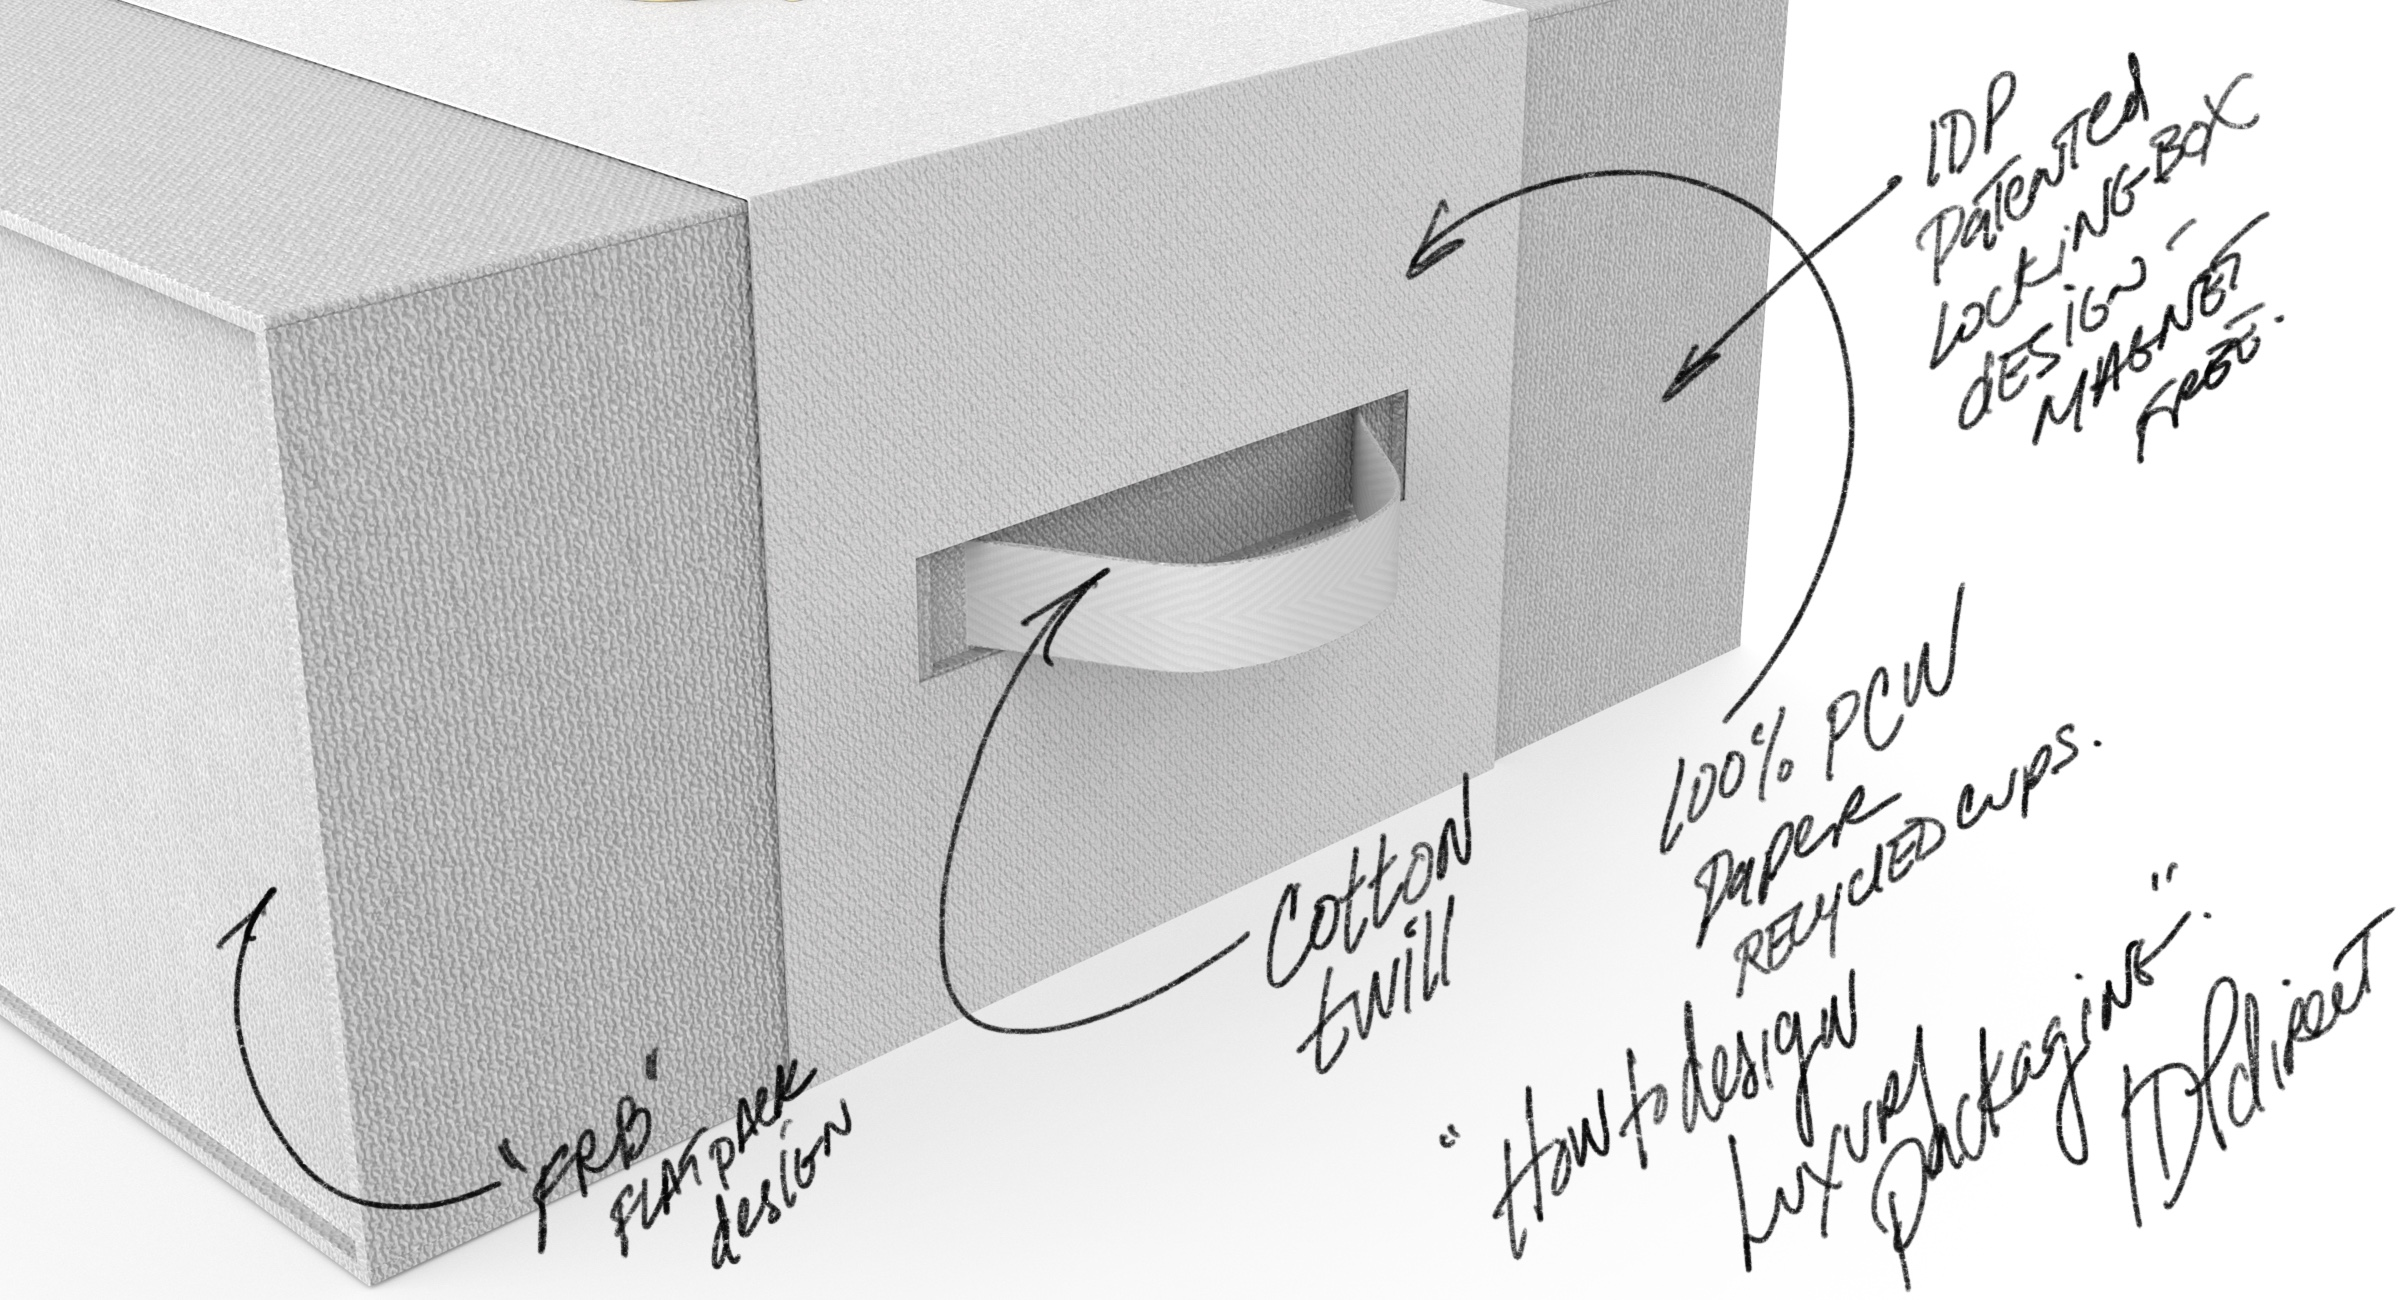 How to design luxury packaging header image shows notes on packaging render.